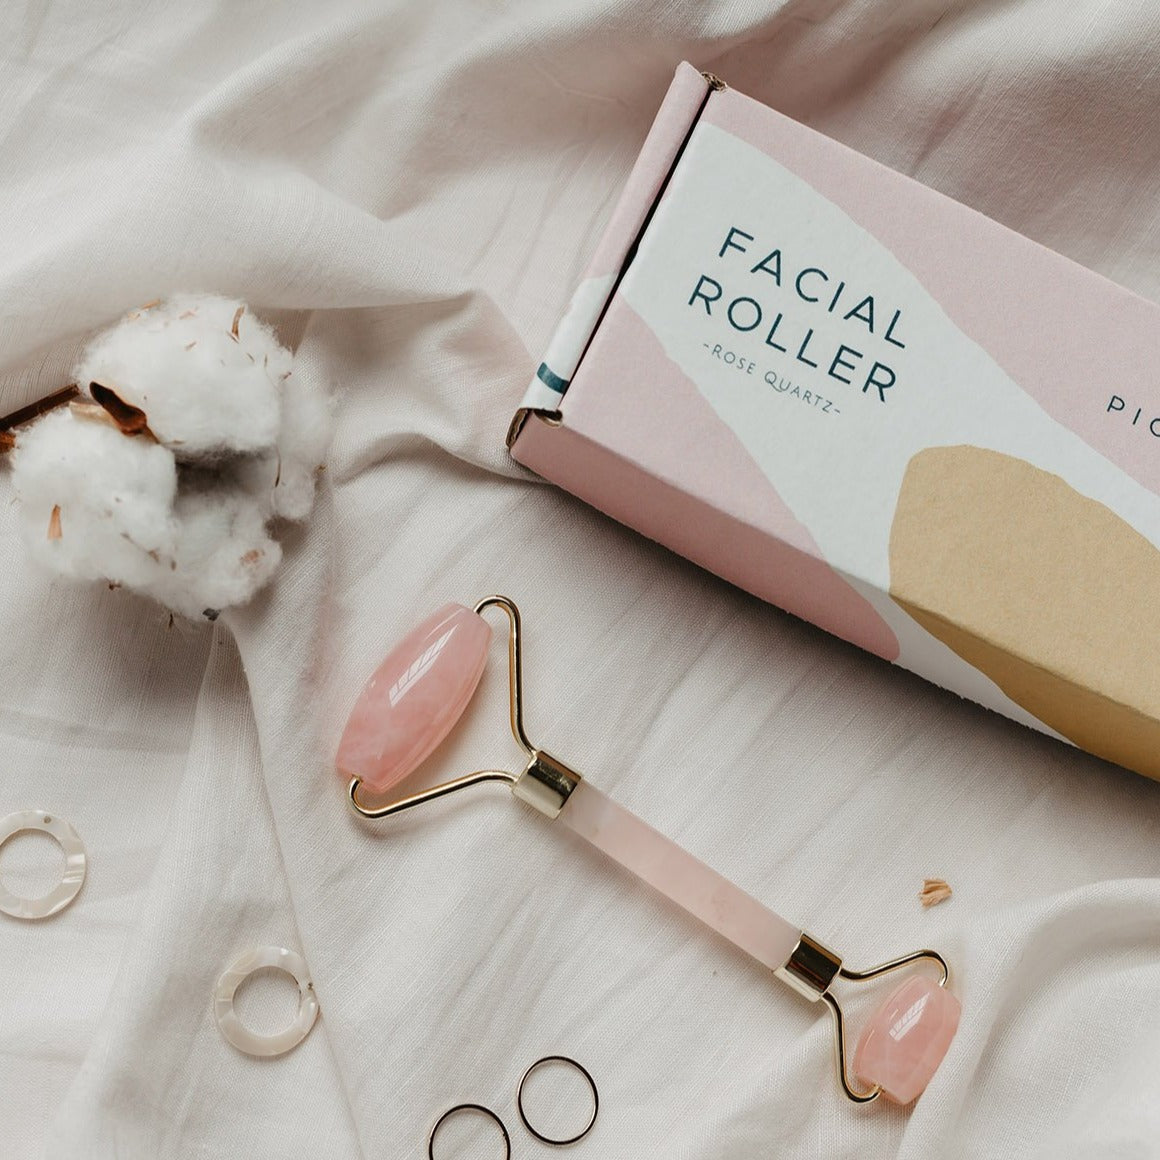 FACIAL ROLLER IN cute gift box available at PICNIC SF